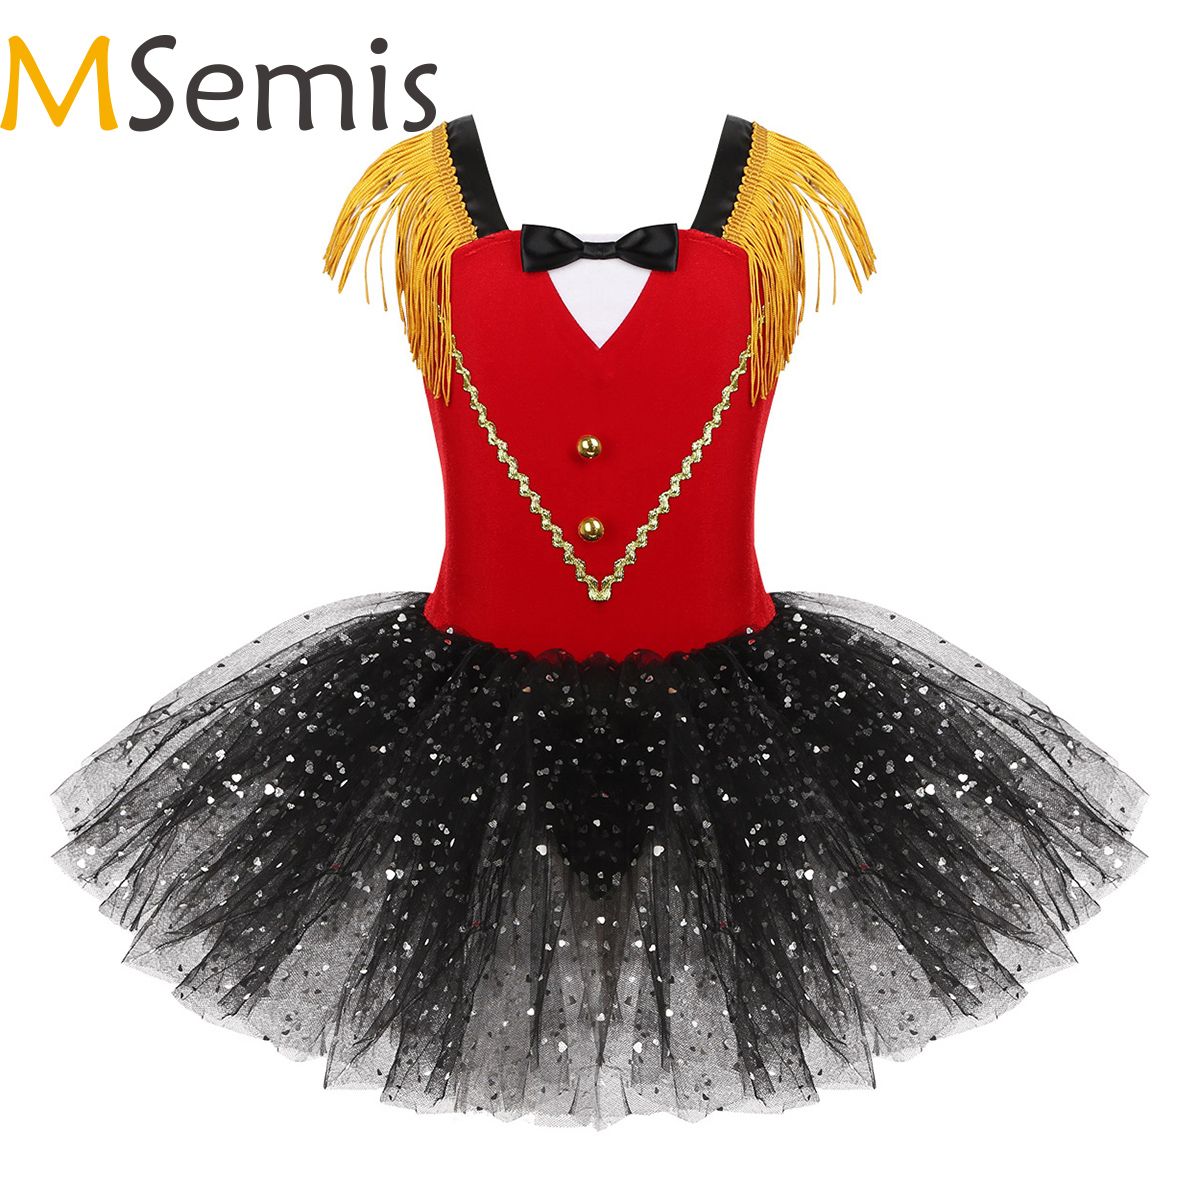 Kids Girls Halloween Circus Ringmaster Costume Dancewear Tassel Bowtie Sweetheart Sequins Tutu Gymnastics Leotard Dance Dress